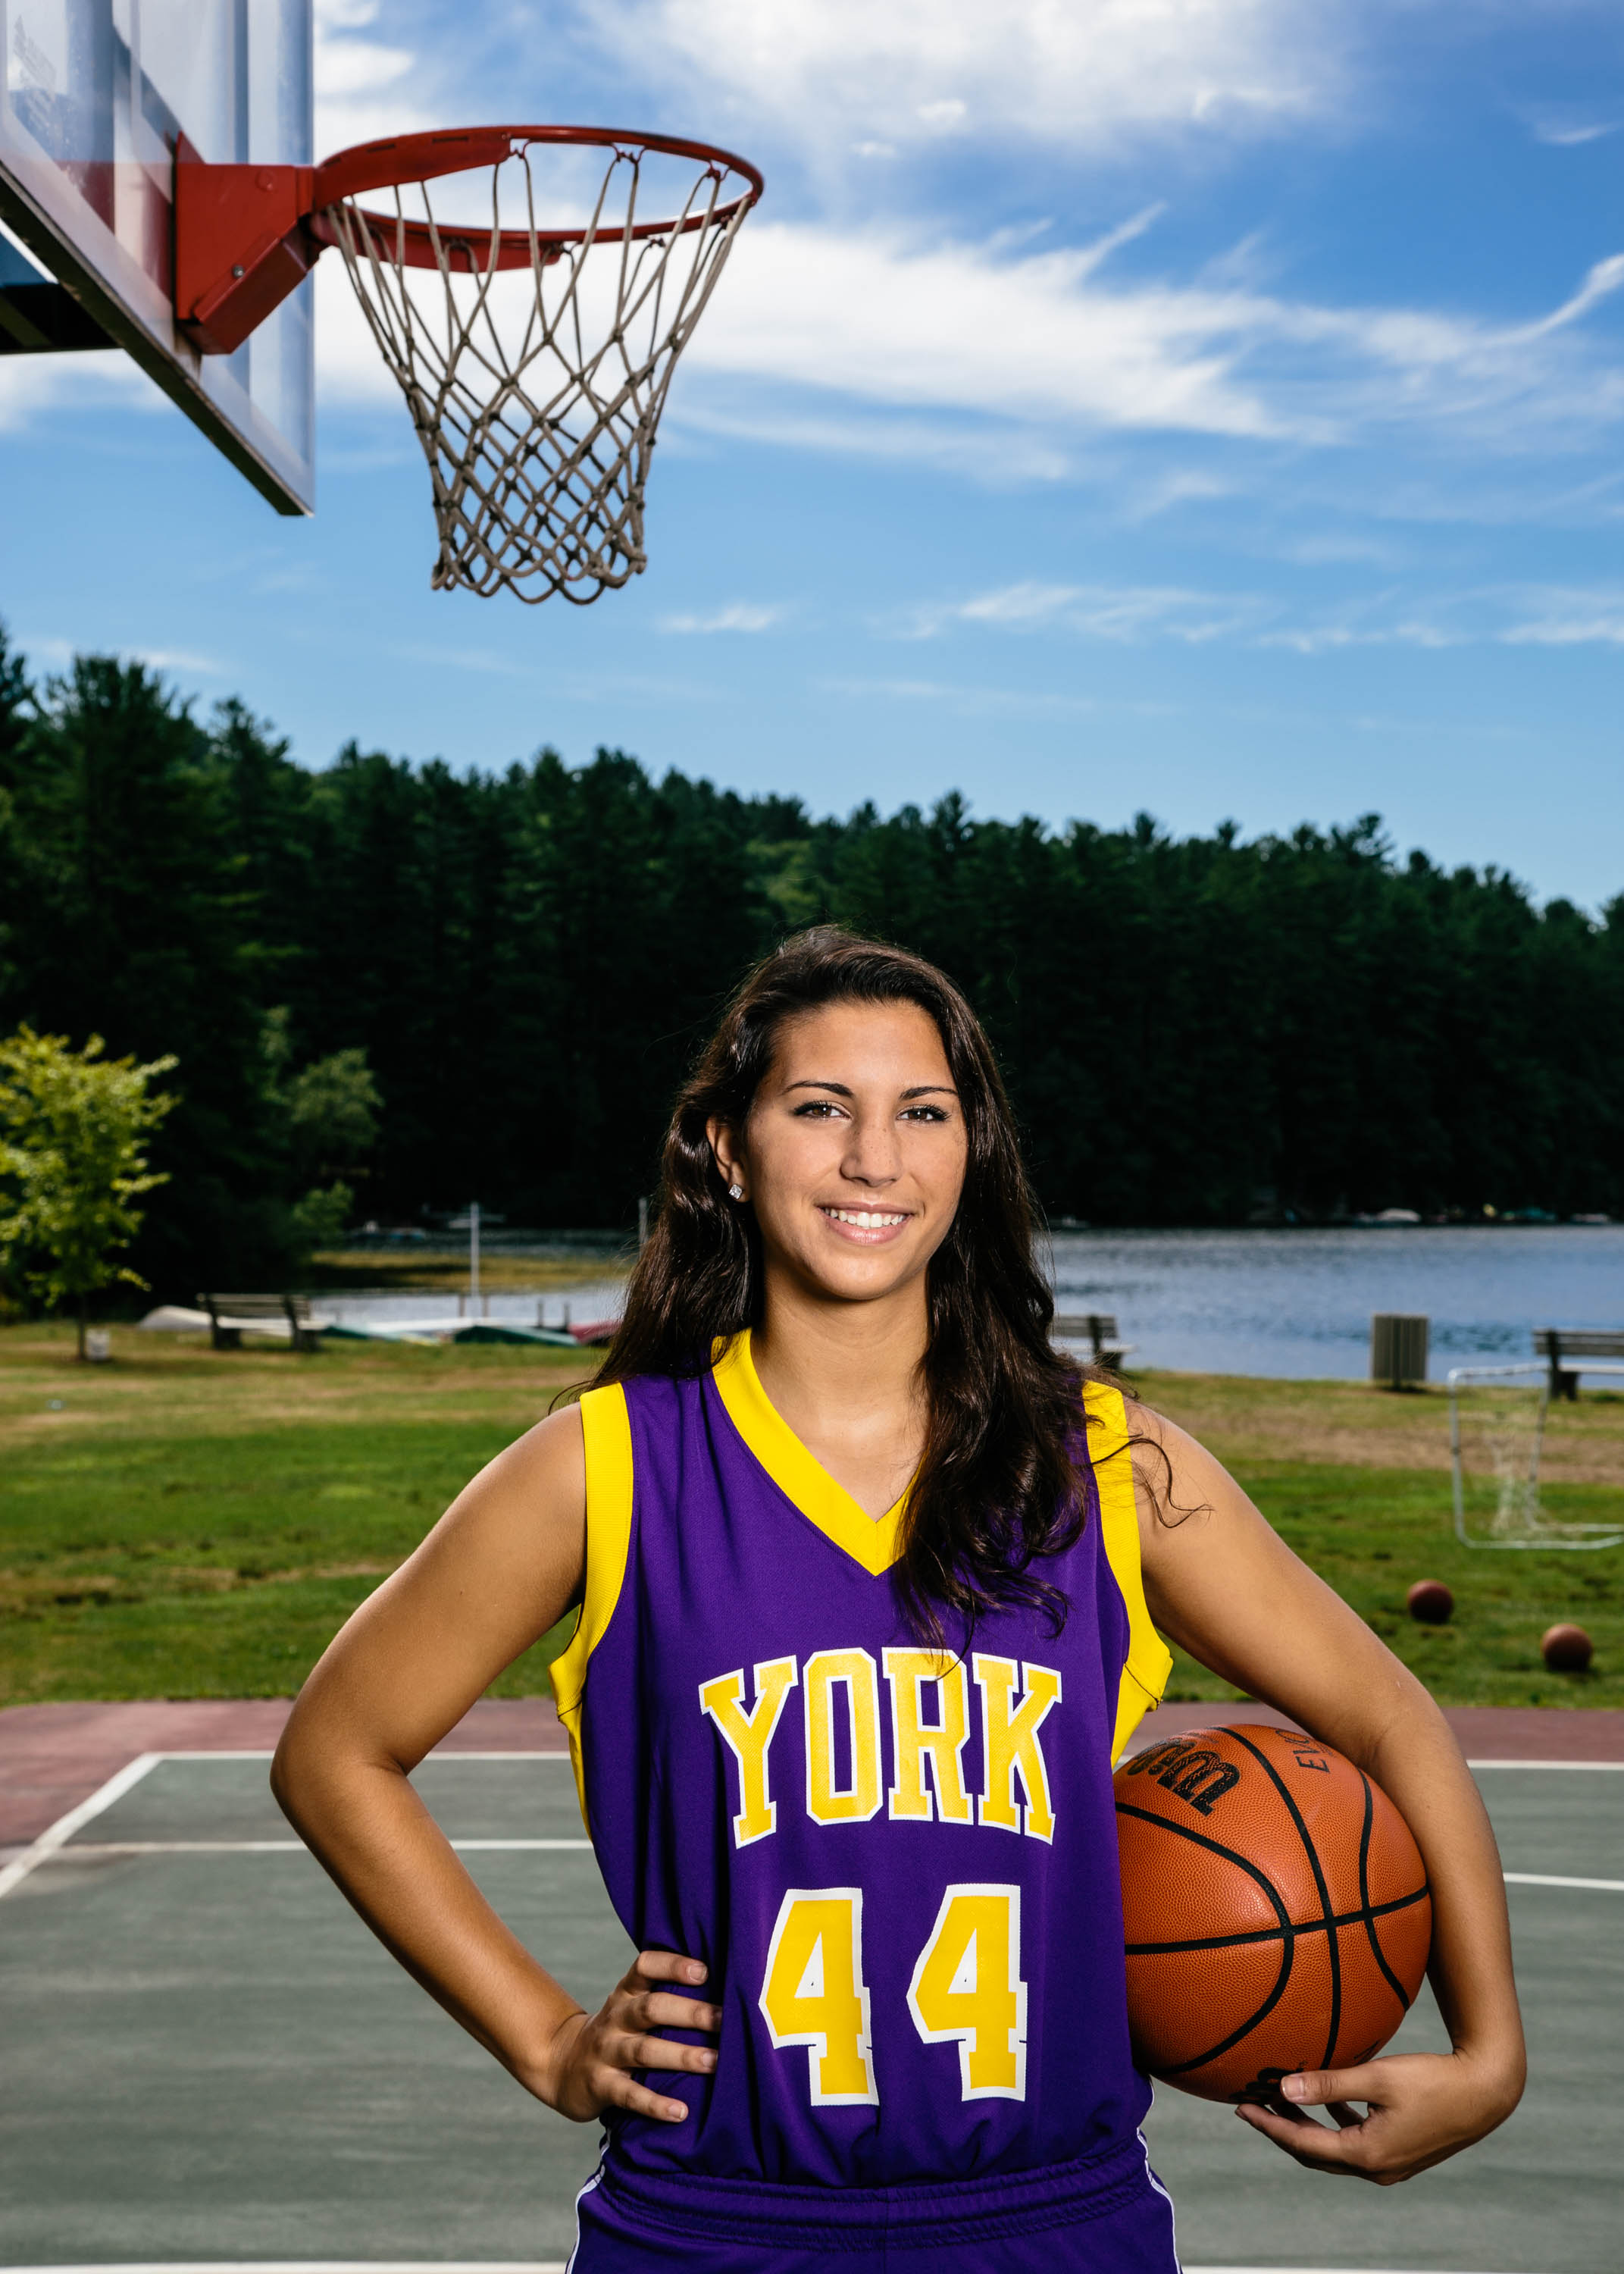 High School Senior Girl with Basketball